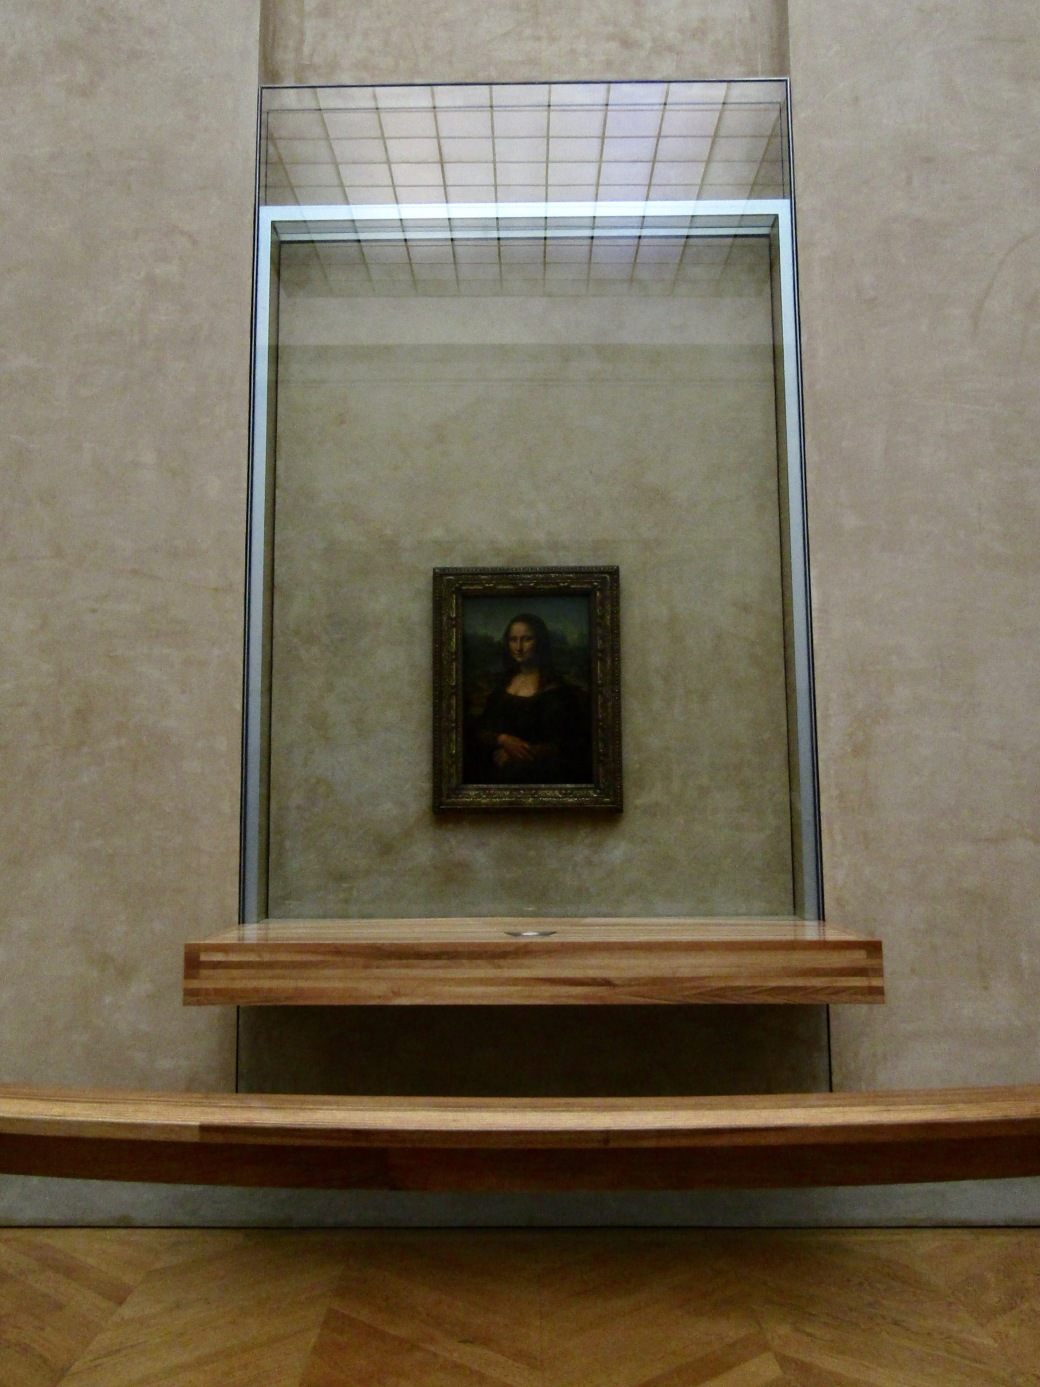 The Mona Lisa has been behind bulletproof glass for several decades due to multiple attempts at vandalism. The painting has been at the Louvre since the end of the French Revolution but for a brief time spent hanging in Napoleon's bedroom.